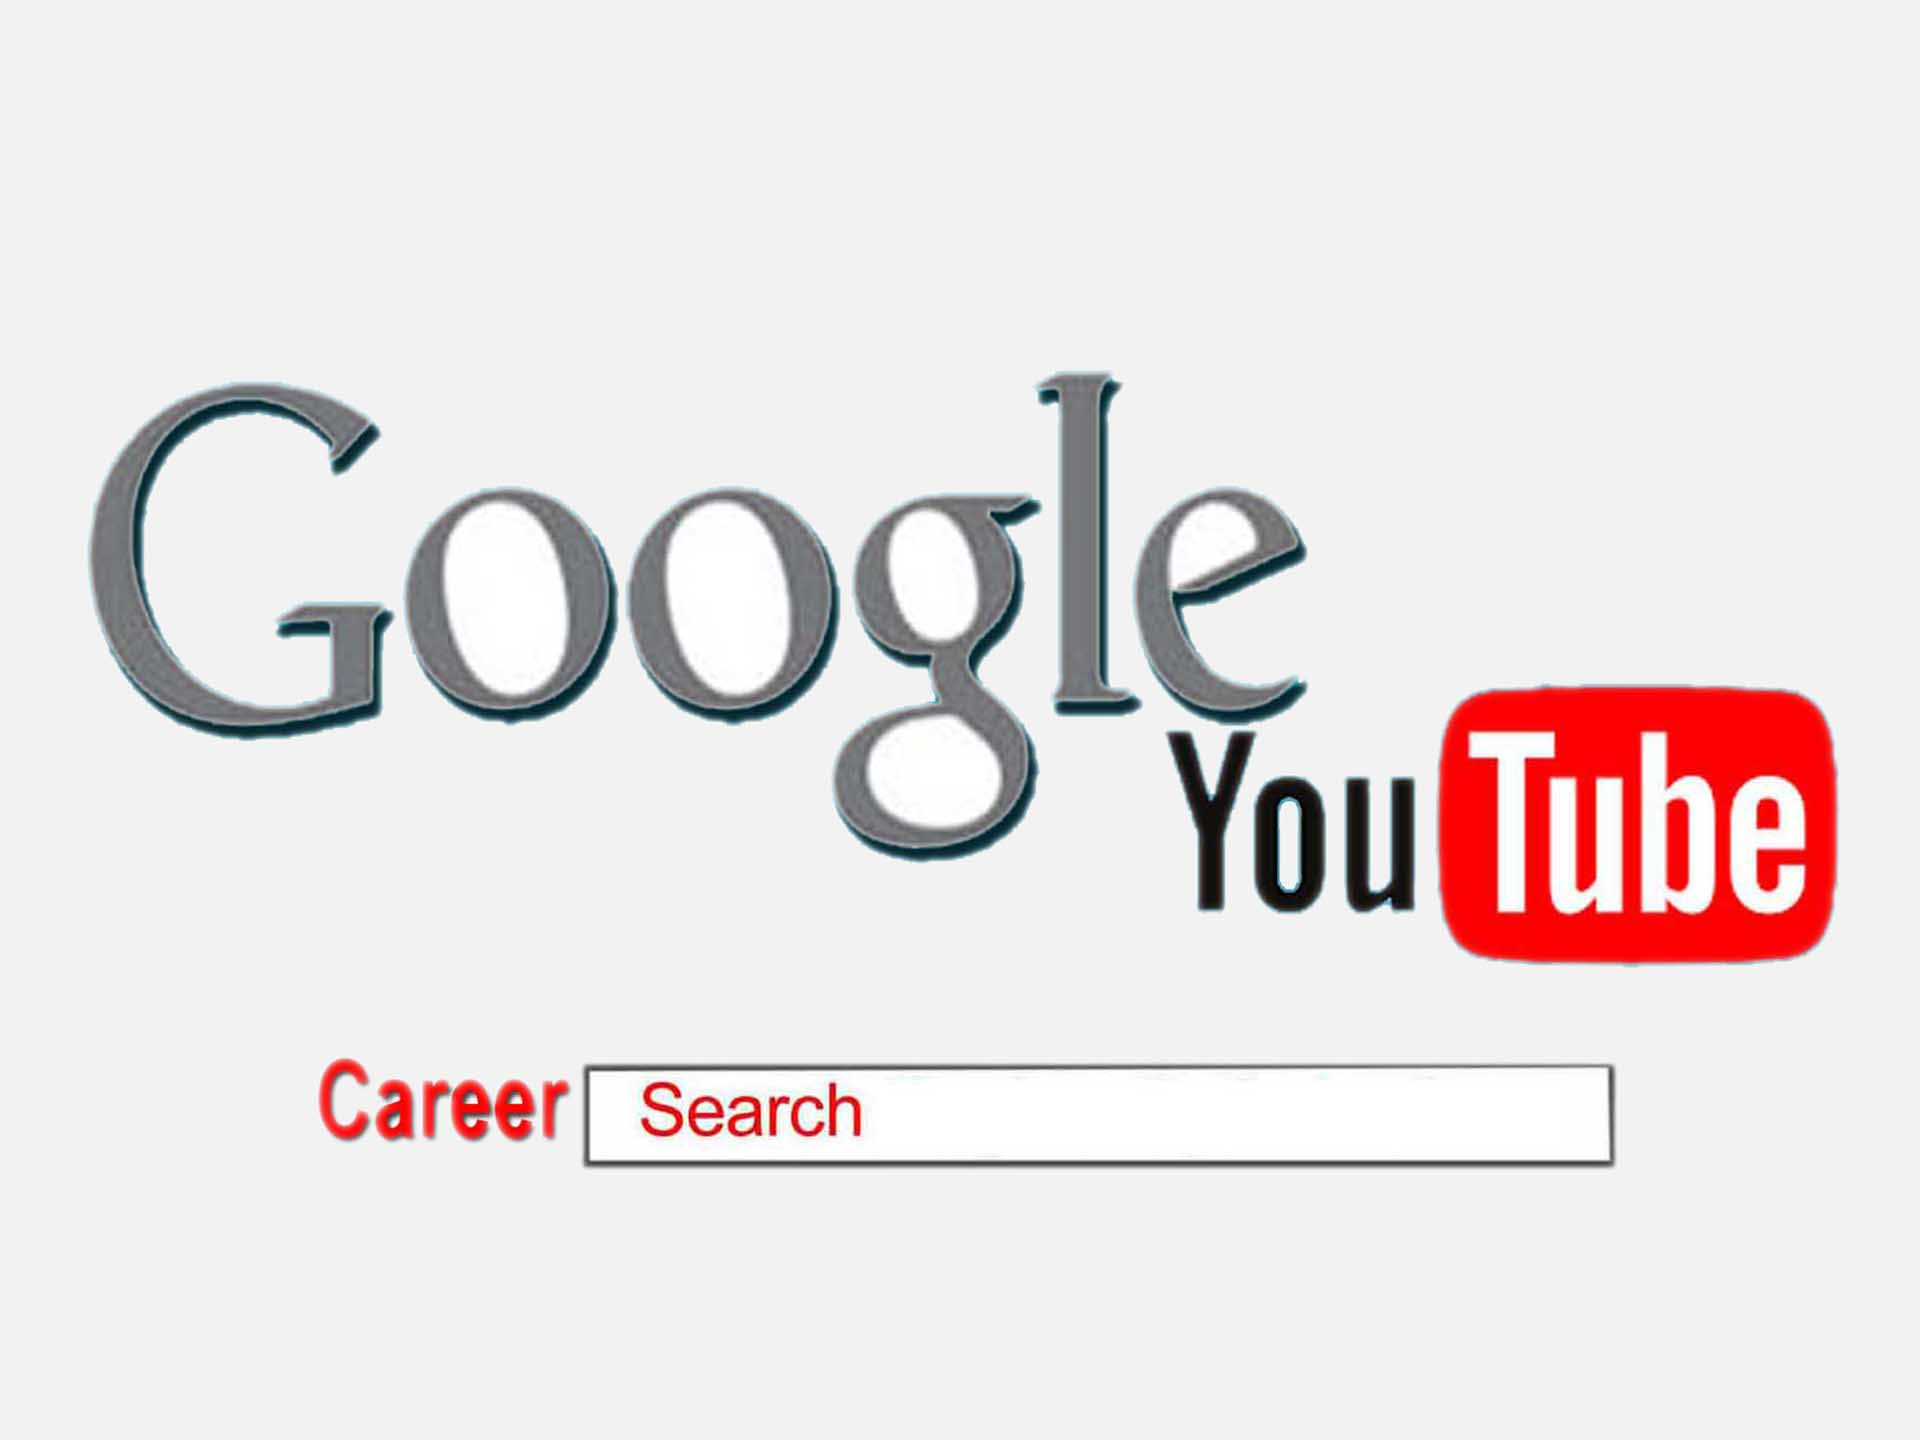 Google youtube use for career